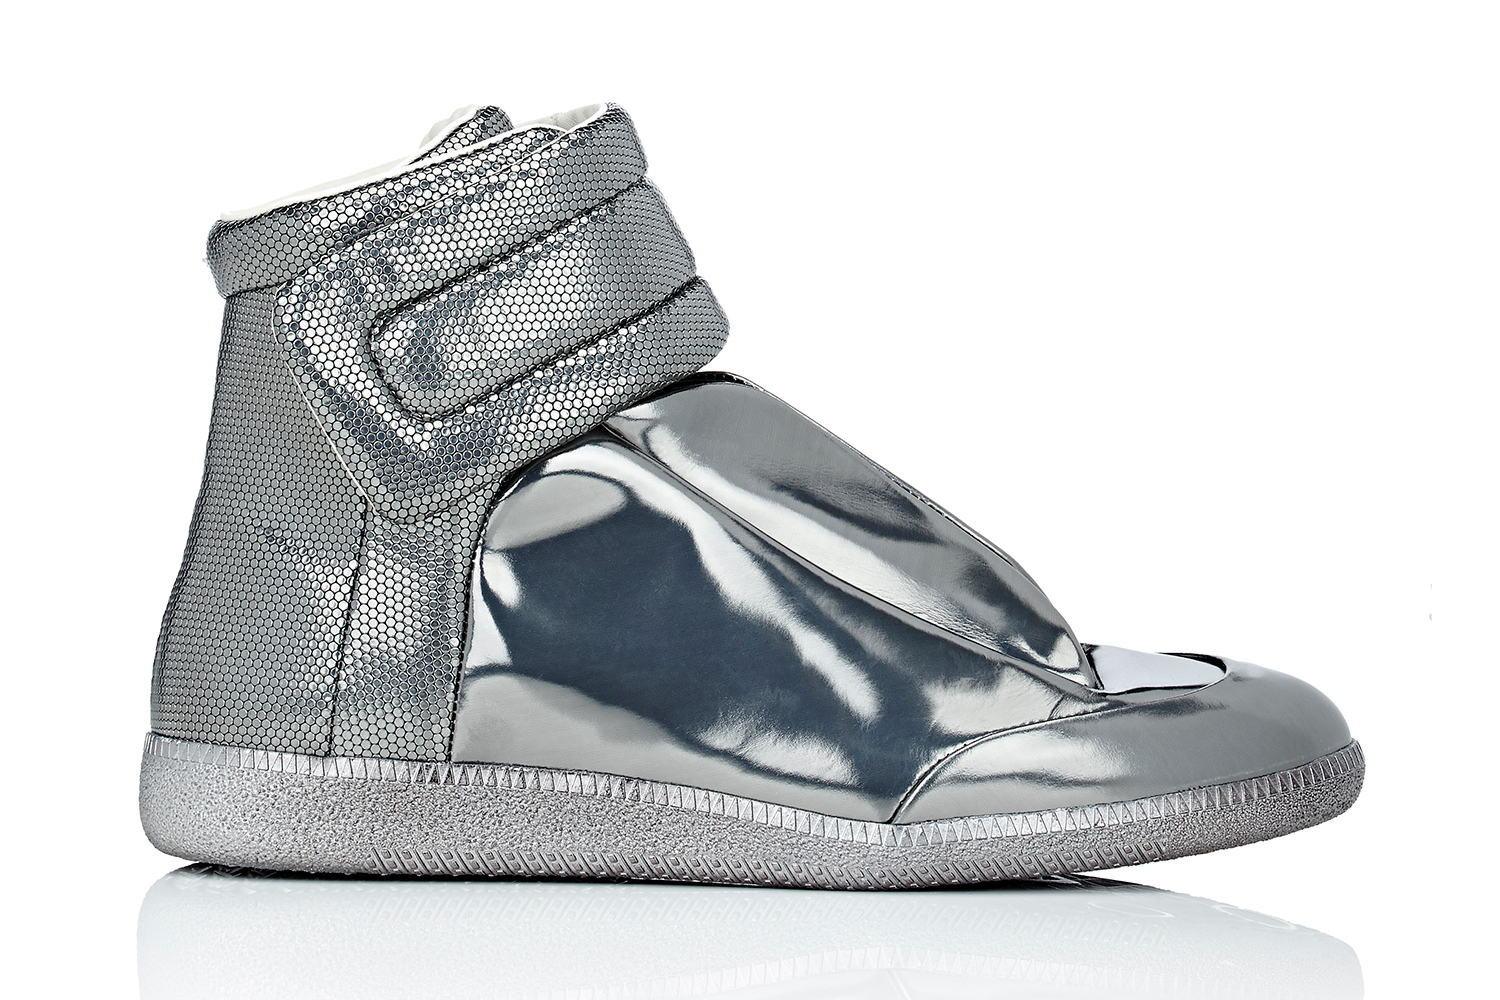 maison-margiela-barneys-metallic-future-high-top-sneakers-01